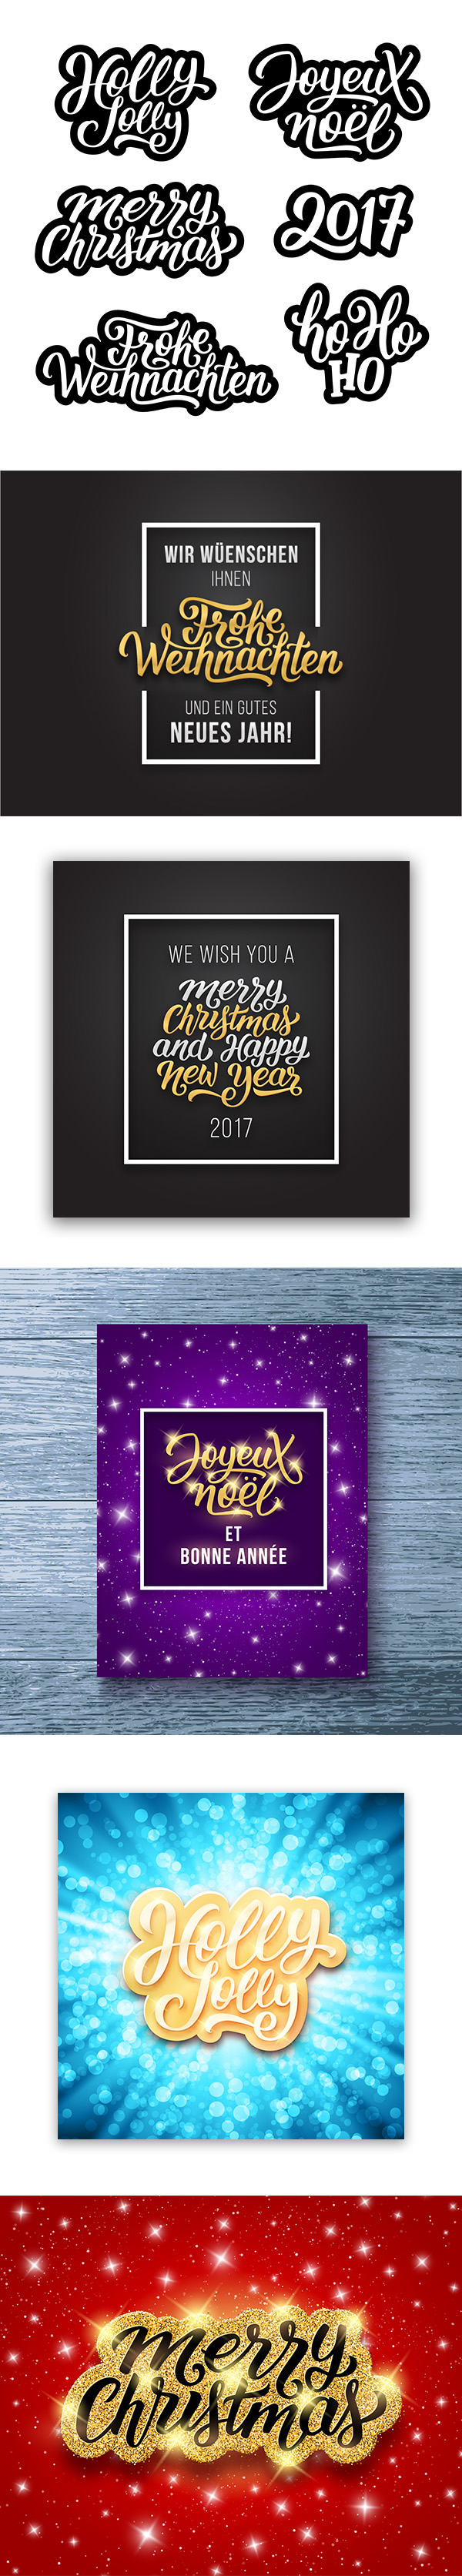 happy new year 2017 greeting cards design on behance